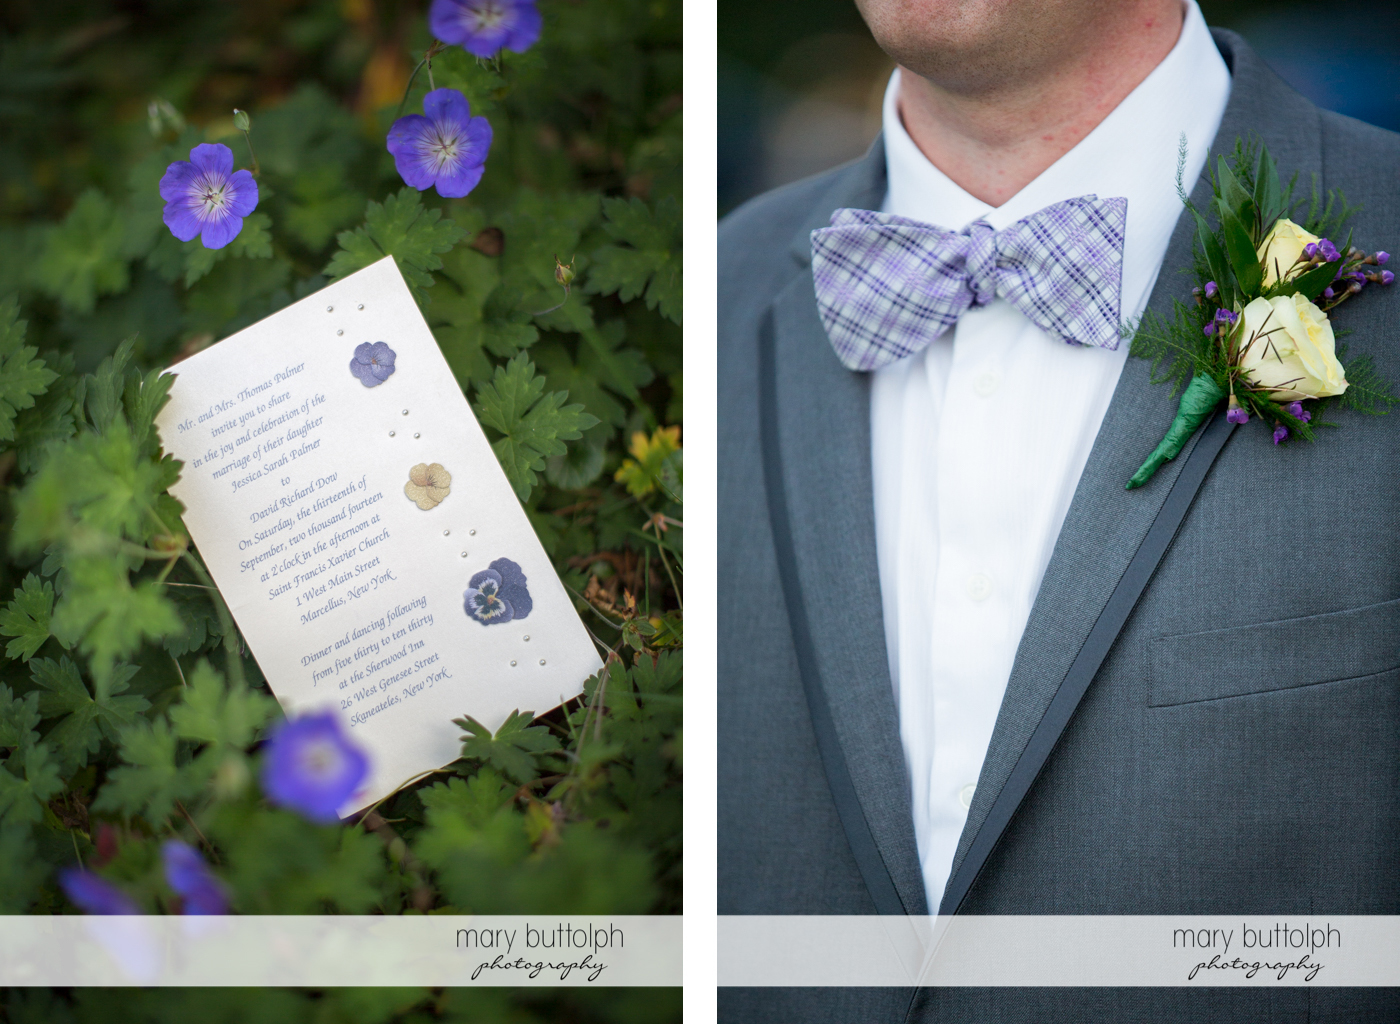 Couple's wedding program on top of lavender plants and a close up shot of the groom's boutonniere at the Sherwood Inn Wedding